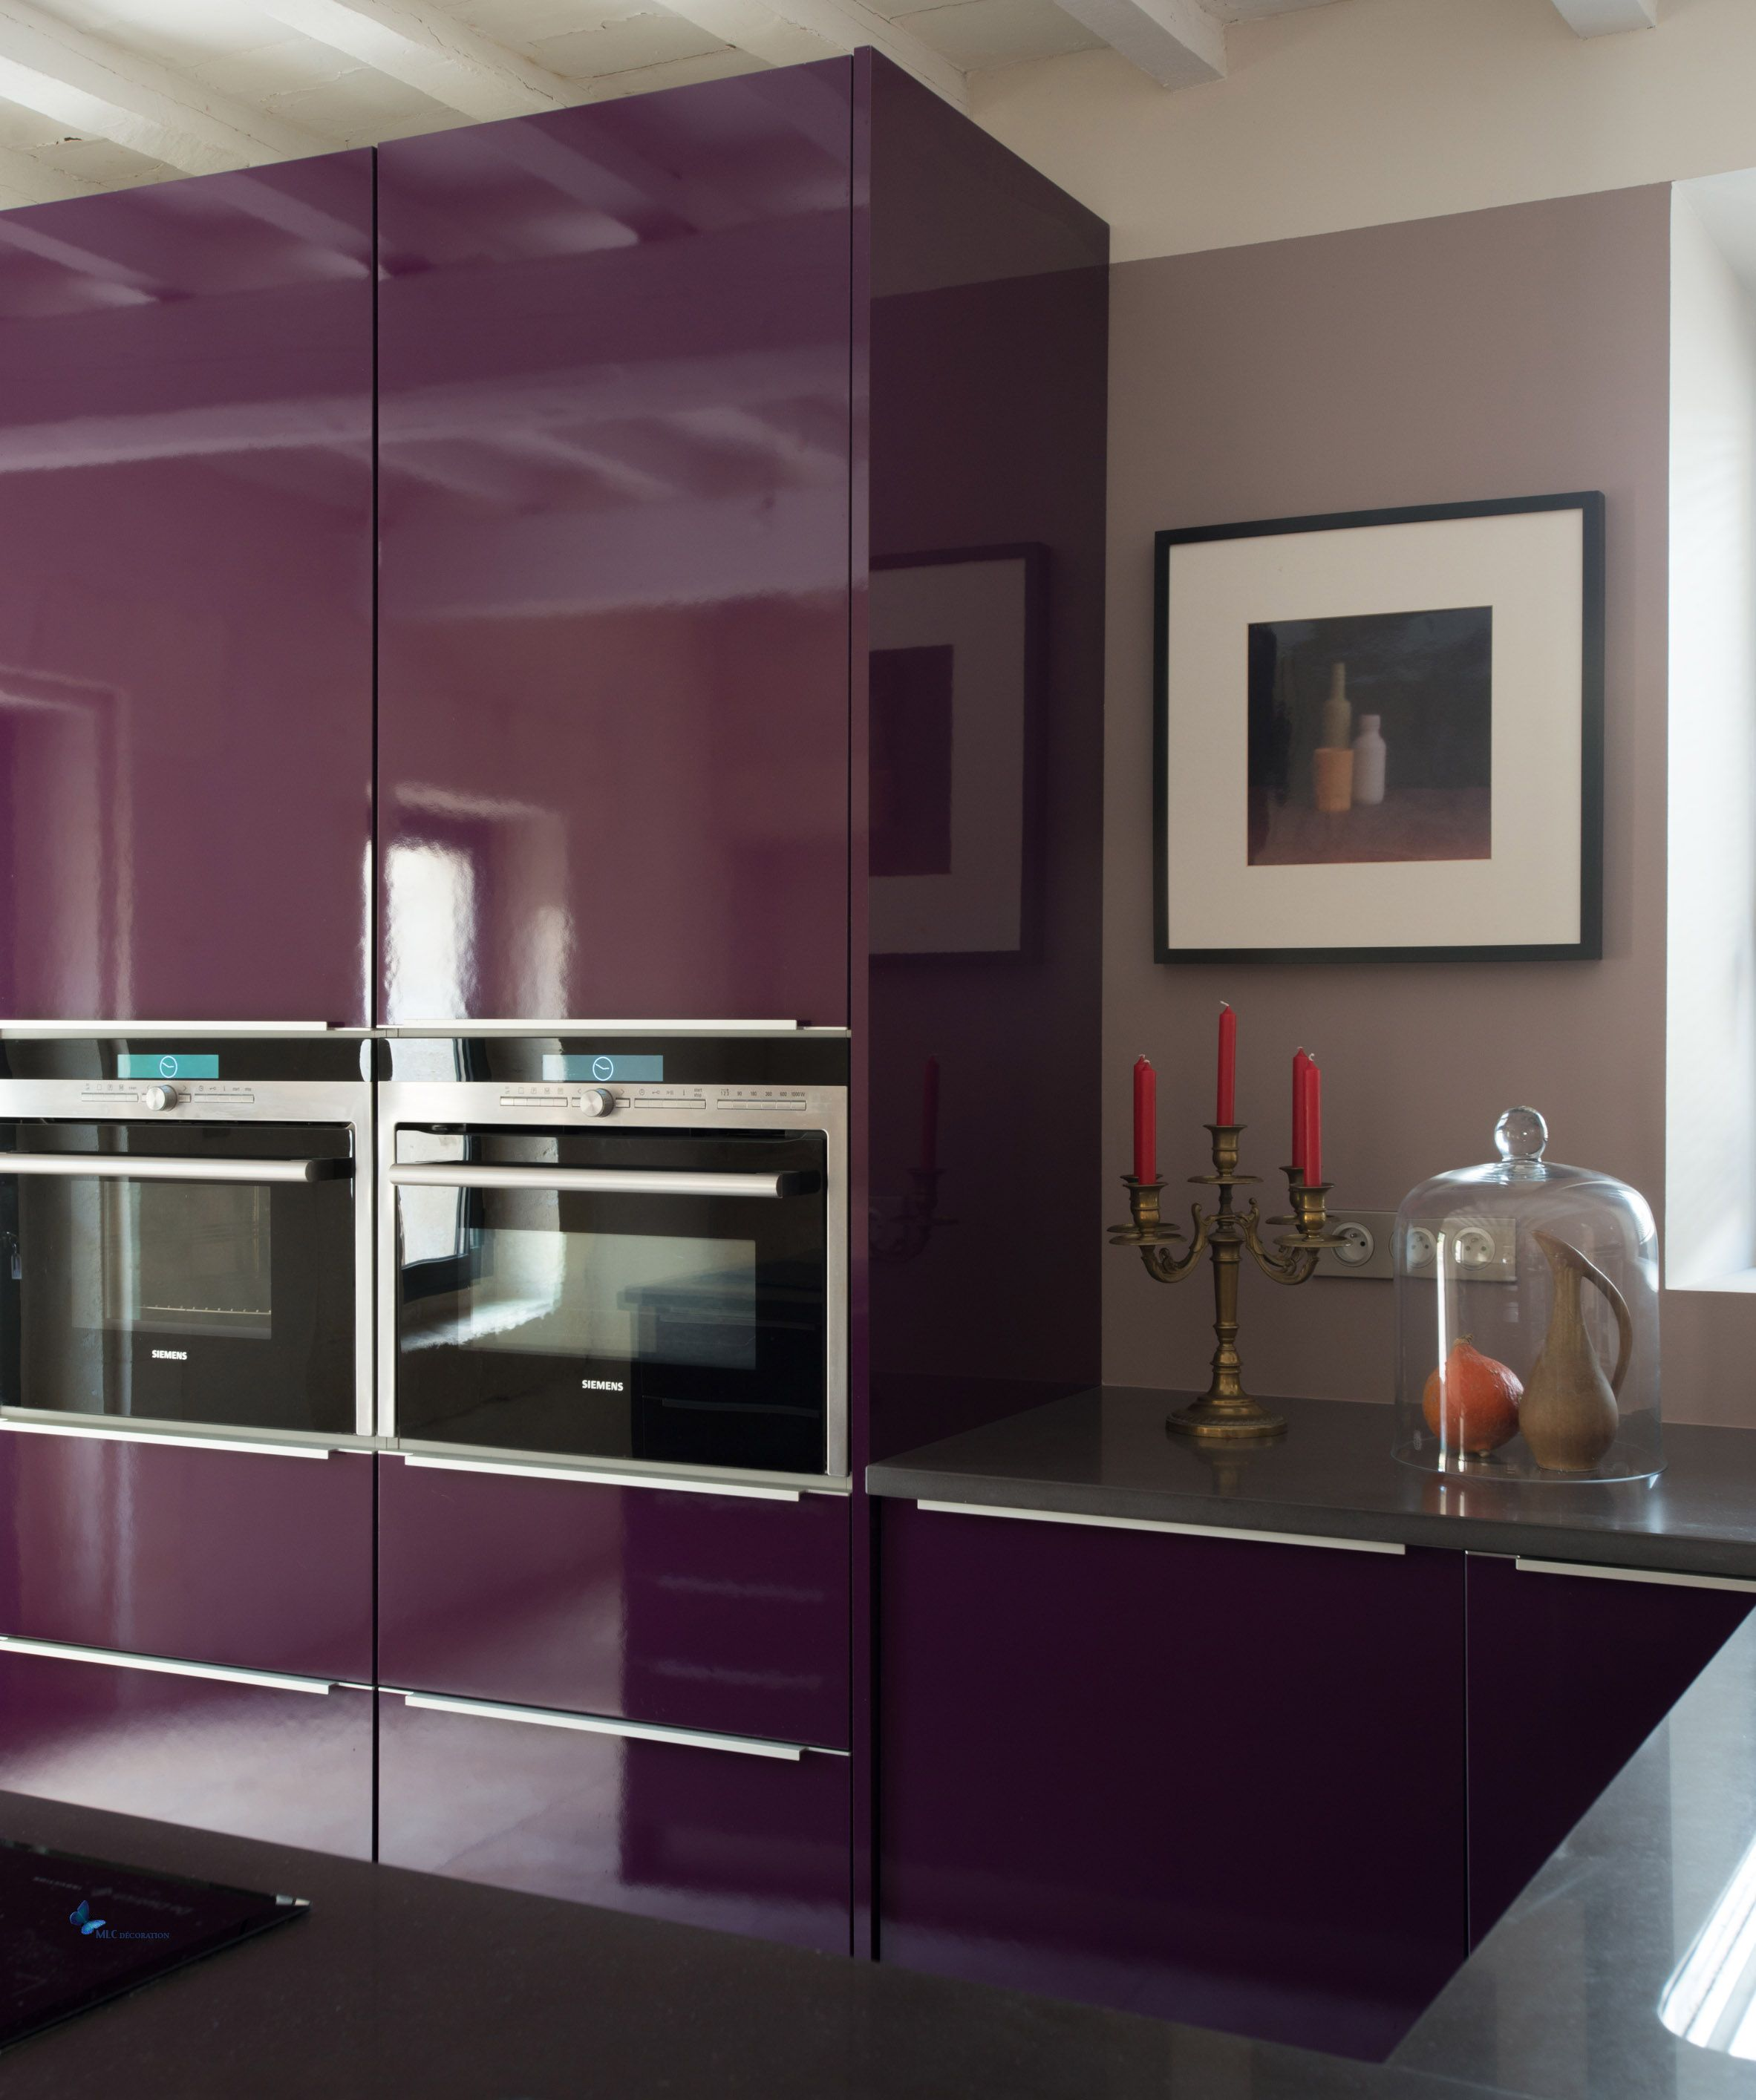 Cuisine prune mlc design le blog deco de mlc couleur for Amenagement cuisines equipees